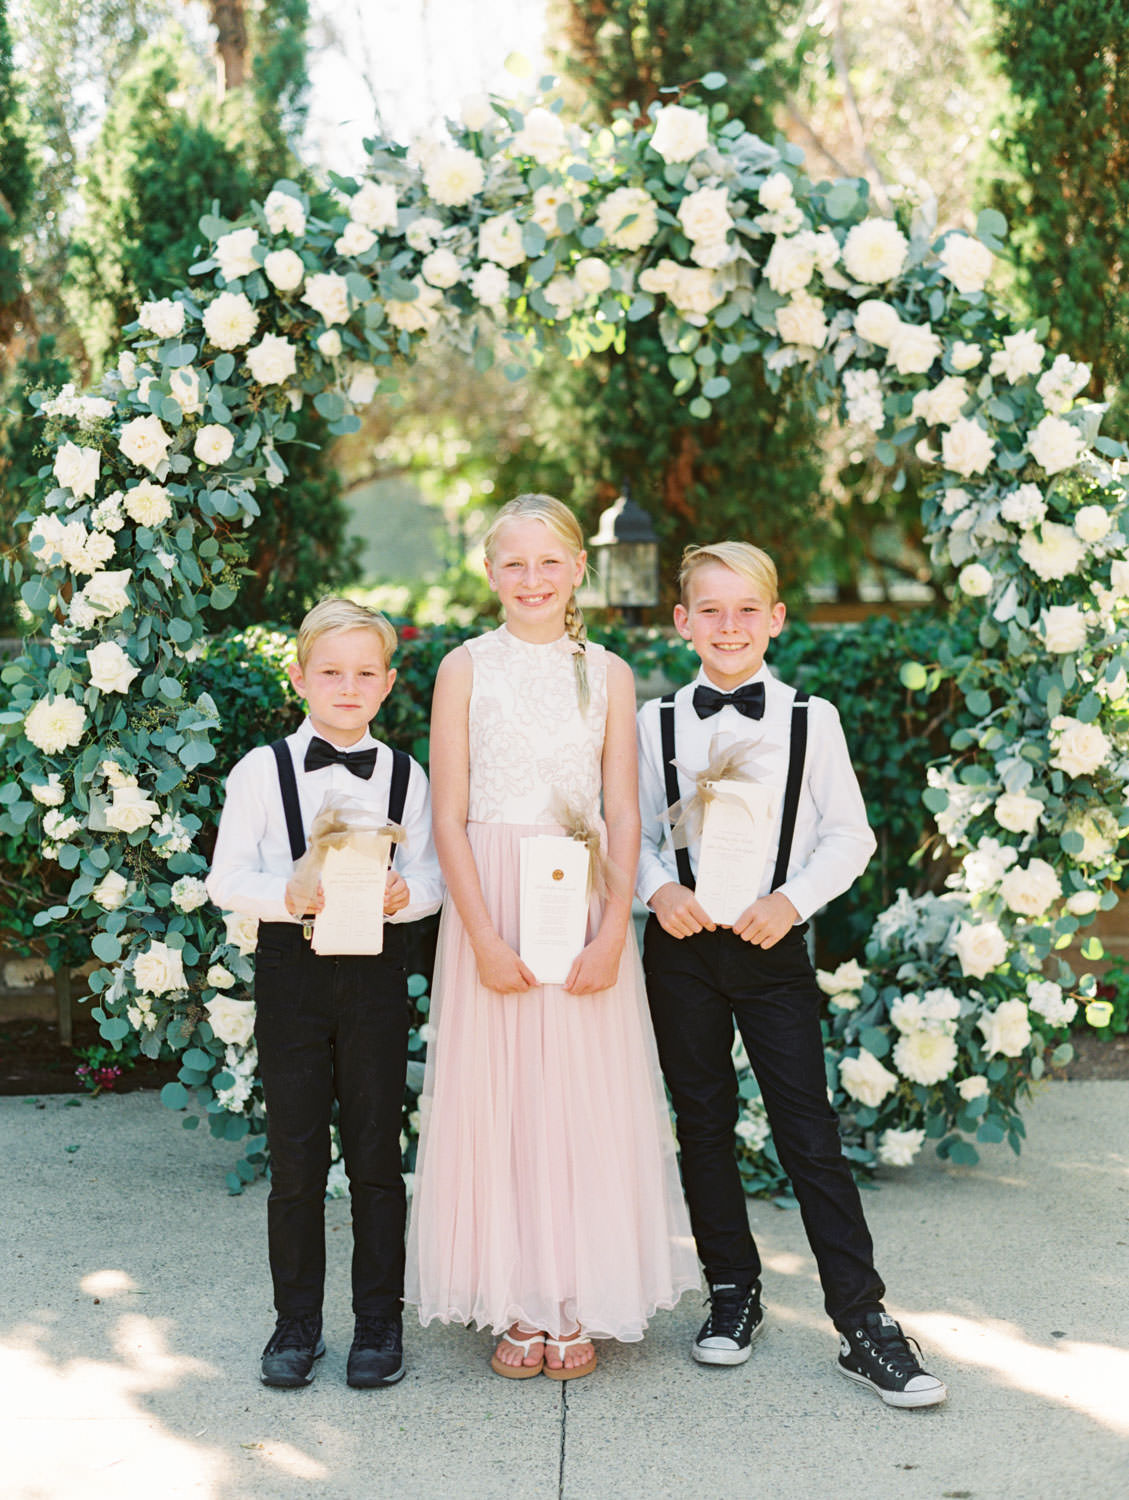 Child attendants holding ceremony programs in front of a circular ceremony arch with silver dollar eucalyptus, white dahlias and roses in front of a well and cypress trees. Olive Lawn ceremony. Estancia La Jolla wedding shot on film by Cavin Elizabeth Photography